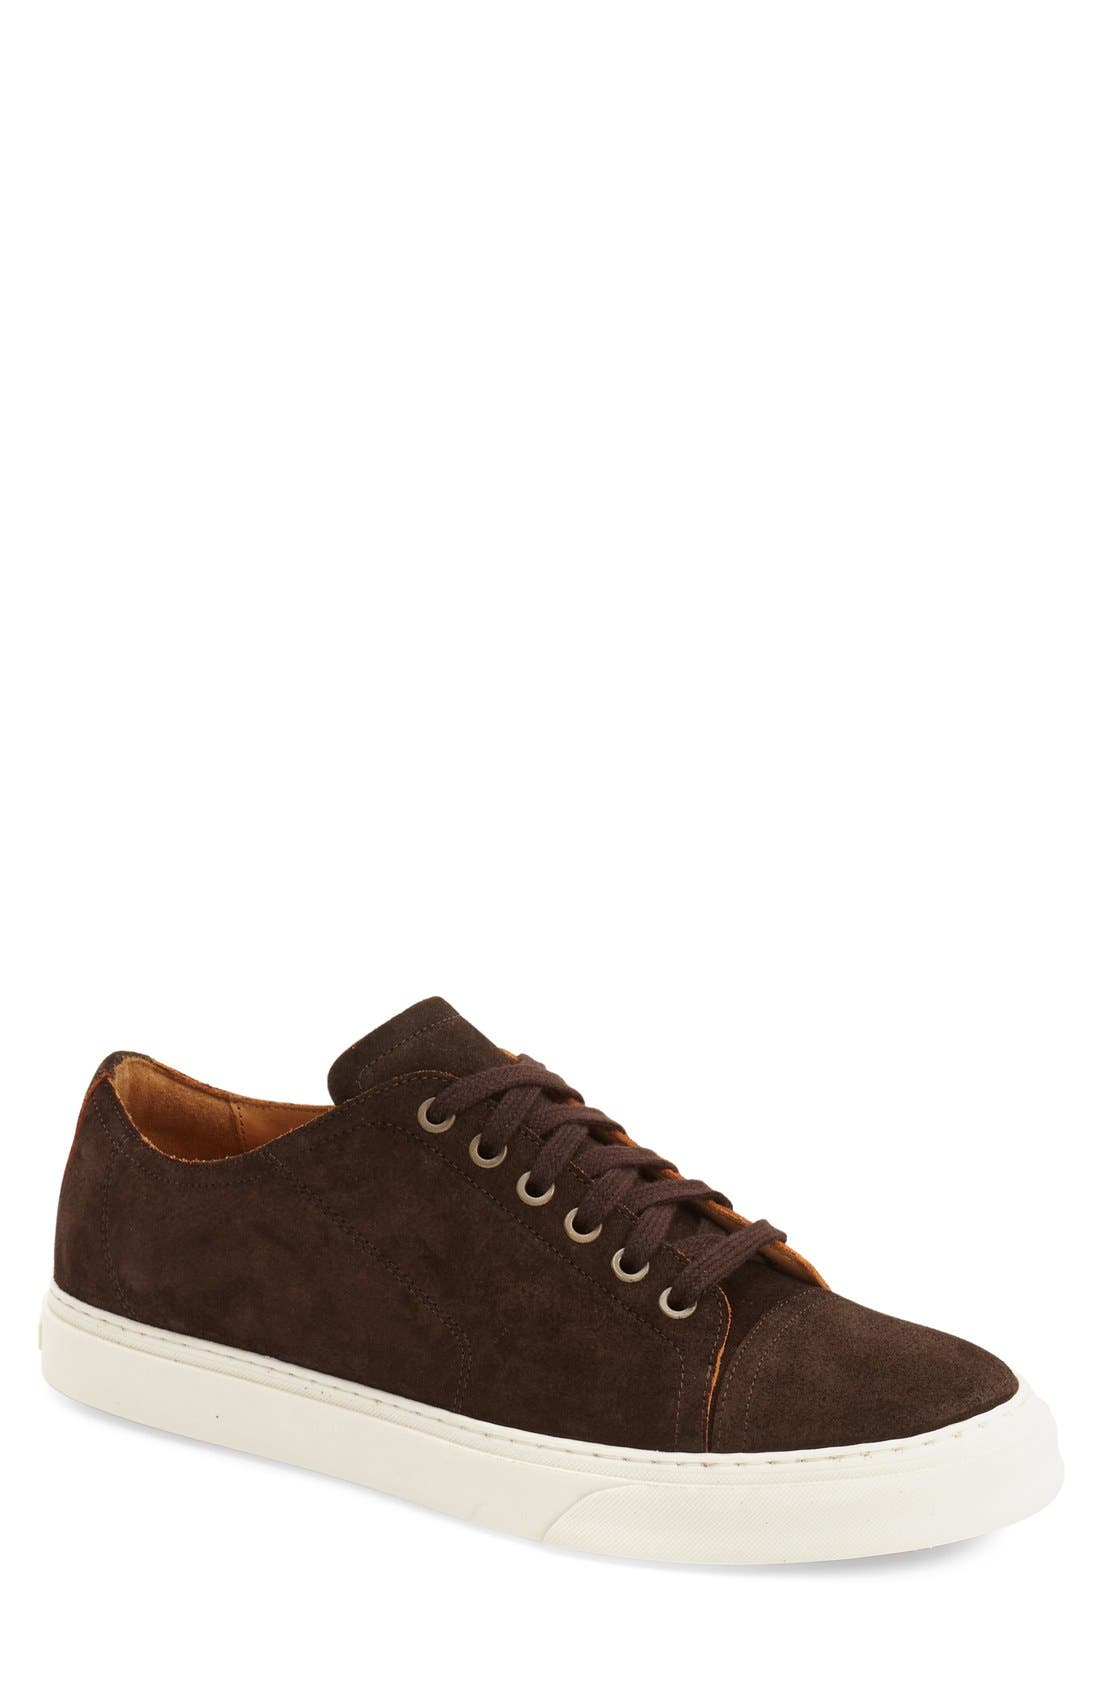 'Quort' Sneaker,                         Main,                         color, Chocolate Suede